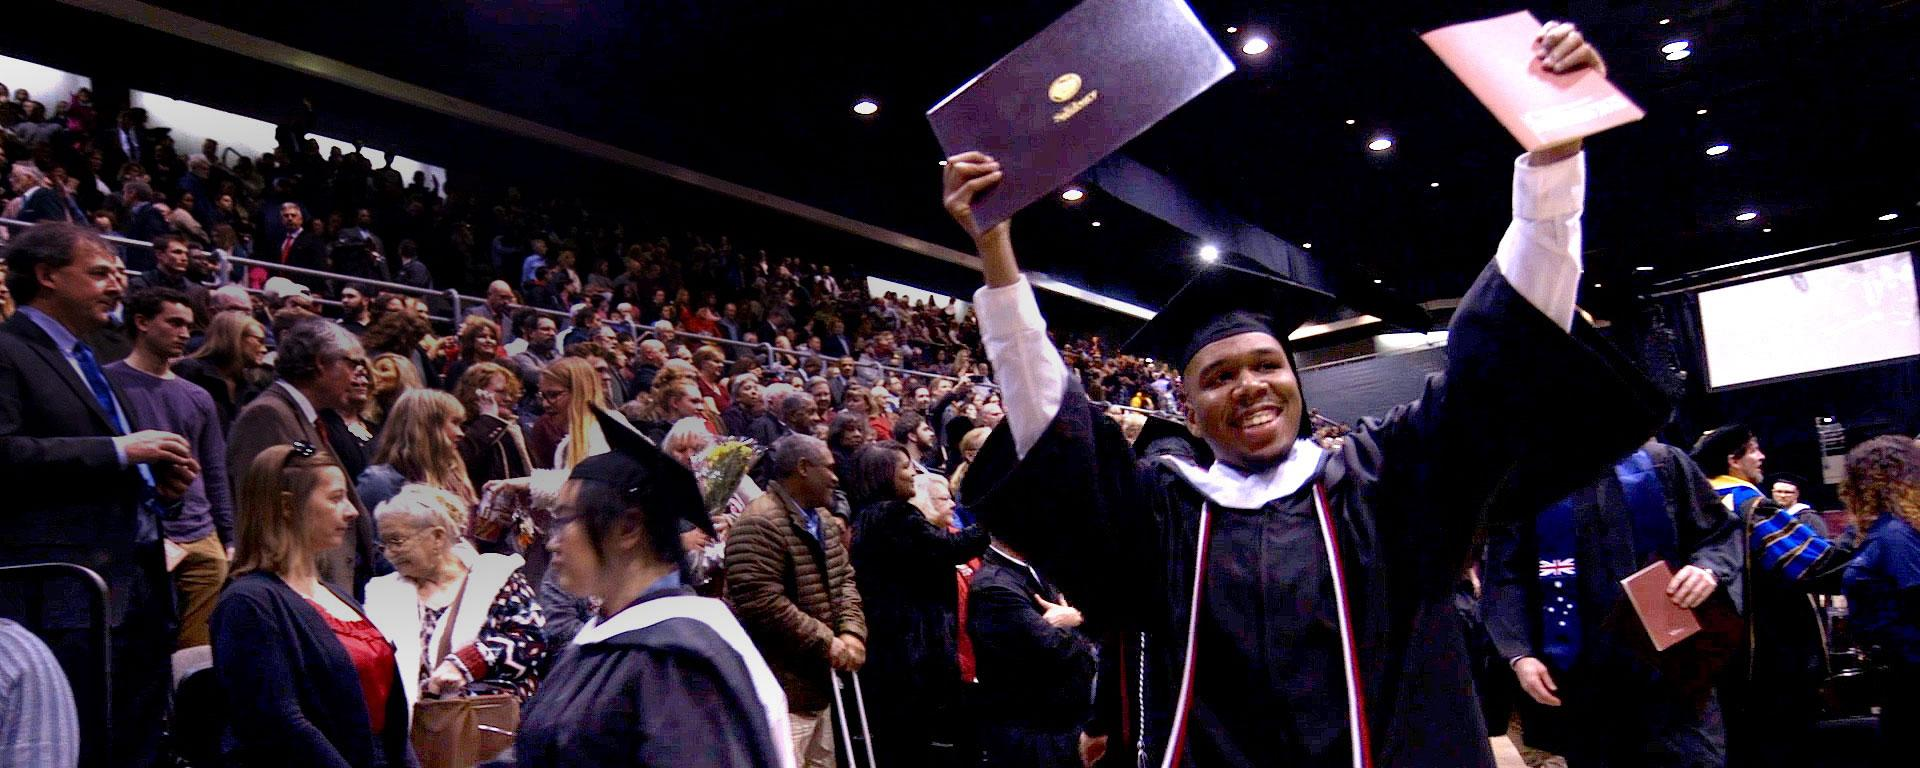 Student holding up diploma at commencement ceremony